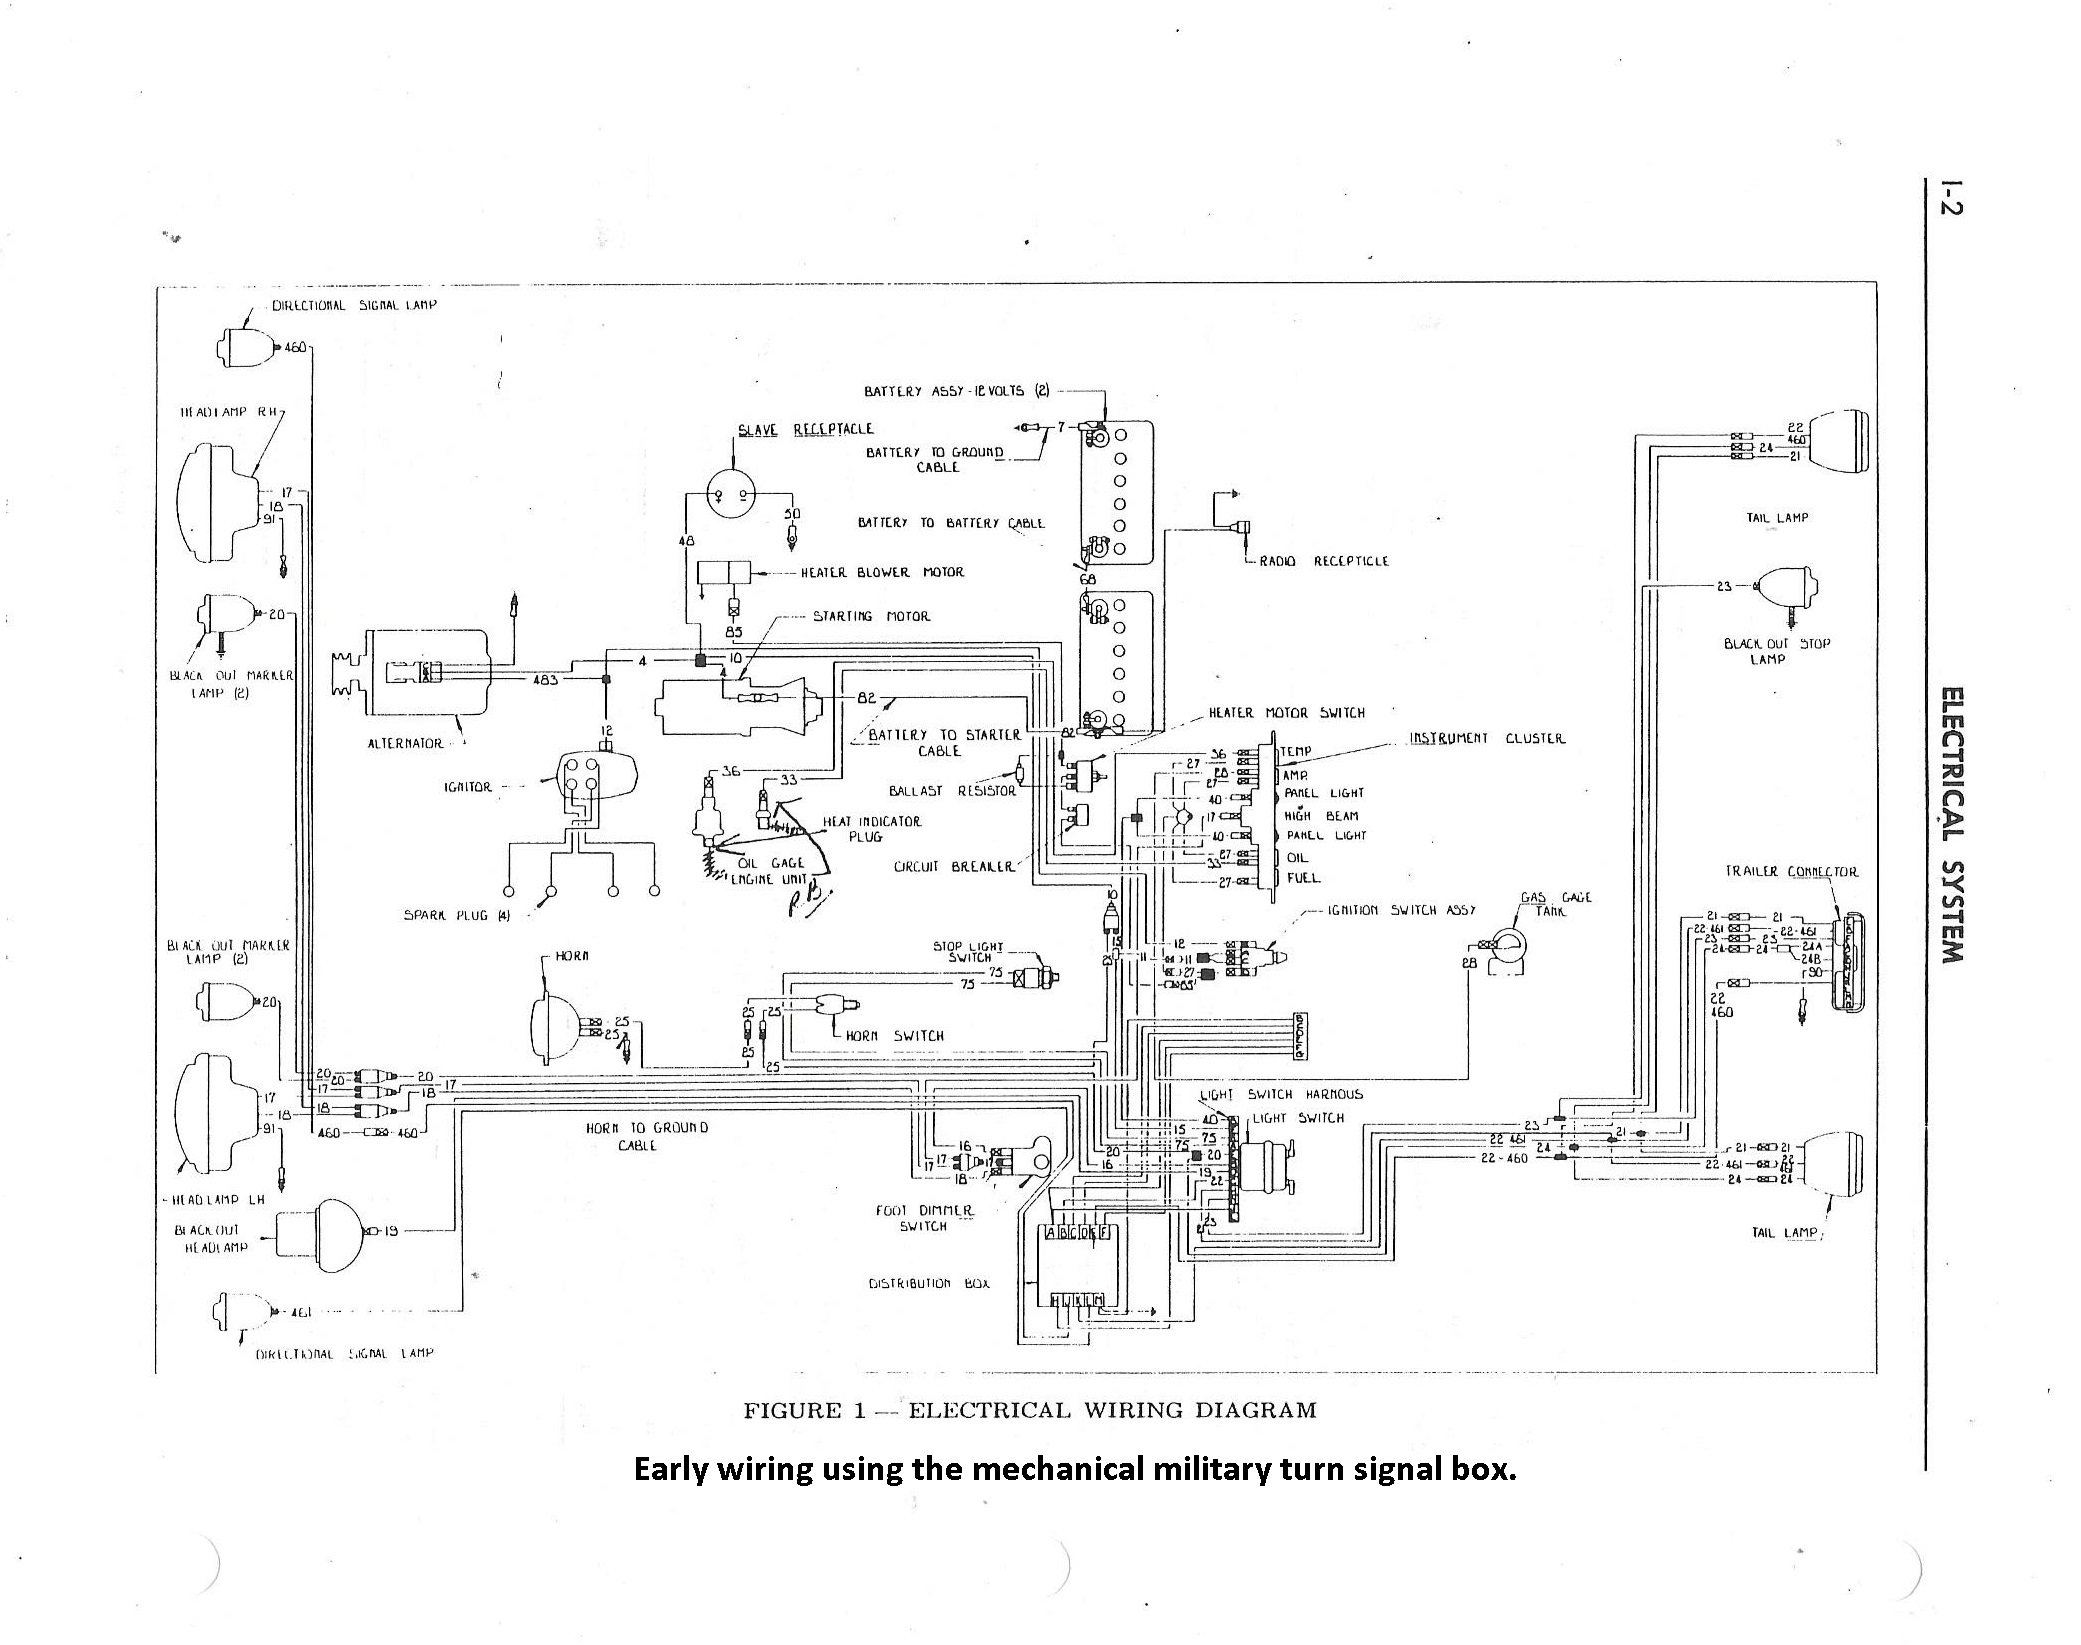 wiring diagram for off road lights jeep 1999 ford mustang fuel pump m38a1 light switch free engine image